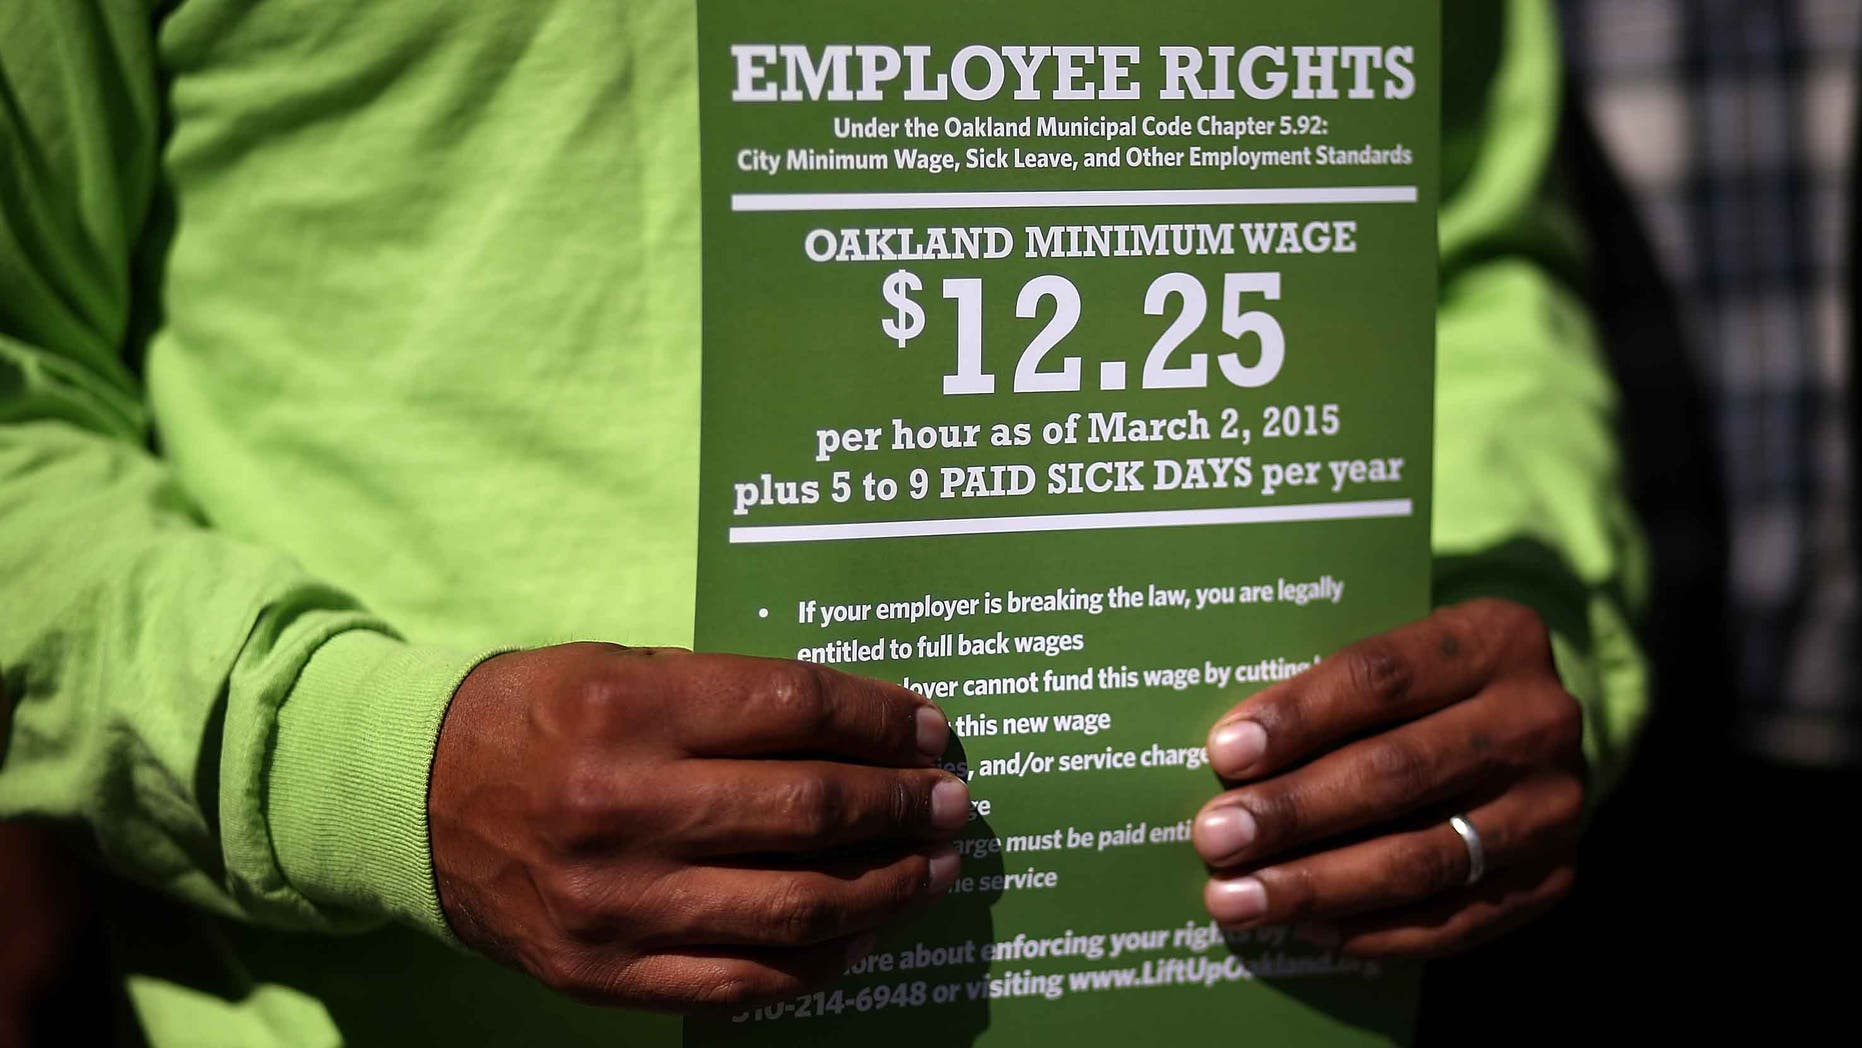 OAKLAND, CA - FEBRUARY 27:  A supporter of Oakland's minimum wage increase holds a sign during a celebration rally outside of Oakland City Hall on February 27, 2015 in Oakland, California. Dozens of minimum wage workers gathered on the steps of Oakland City Hall to celebrate a $3 increase in the city's minimum wage to $12.25 an hour. Voters passed measure FF in November with 81 percent voting in favor of the wage increase. The new wage goes into effect on March 2.  (Photo by Justin Sullivan/Getty Images)